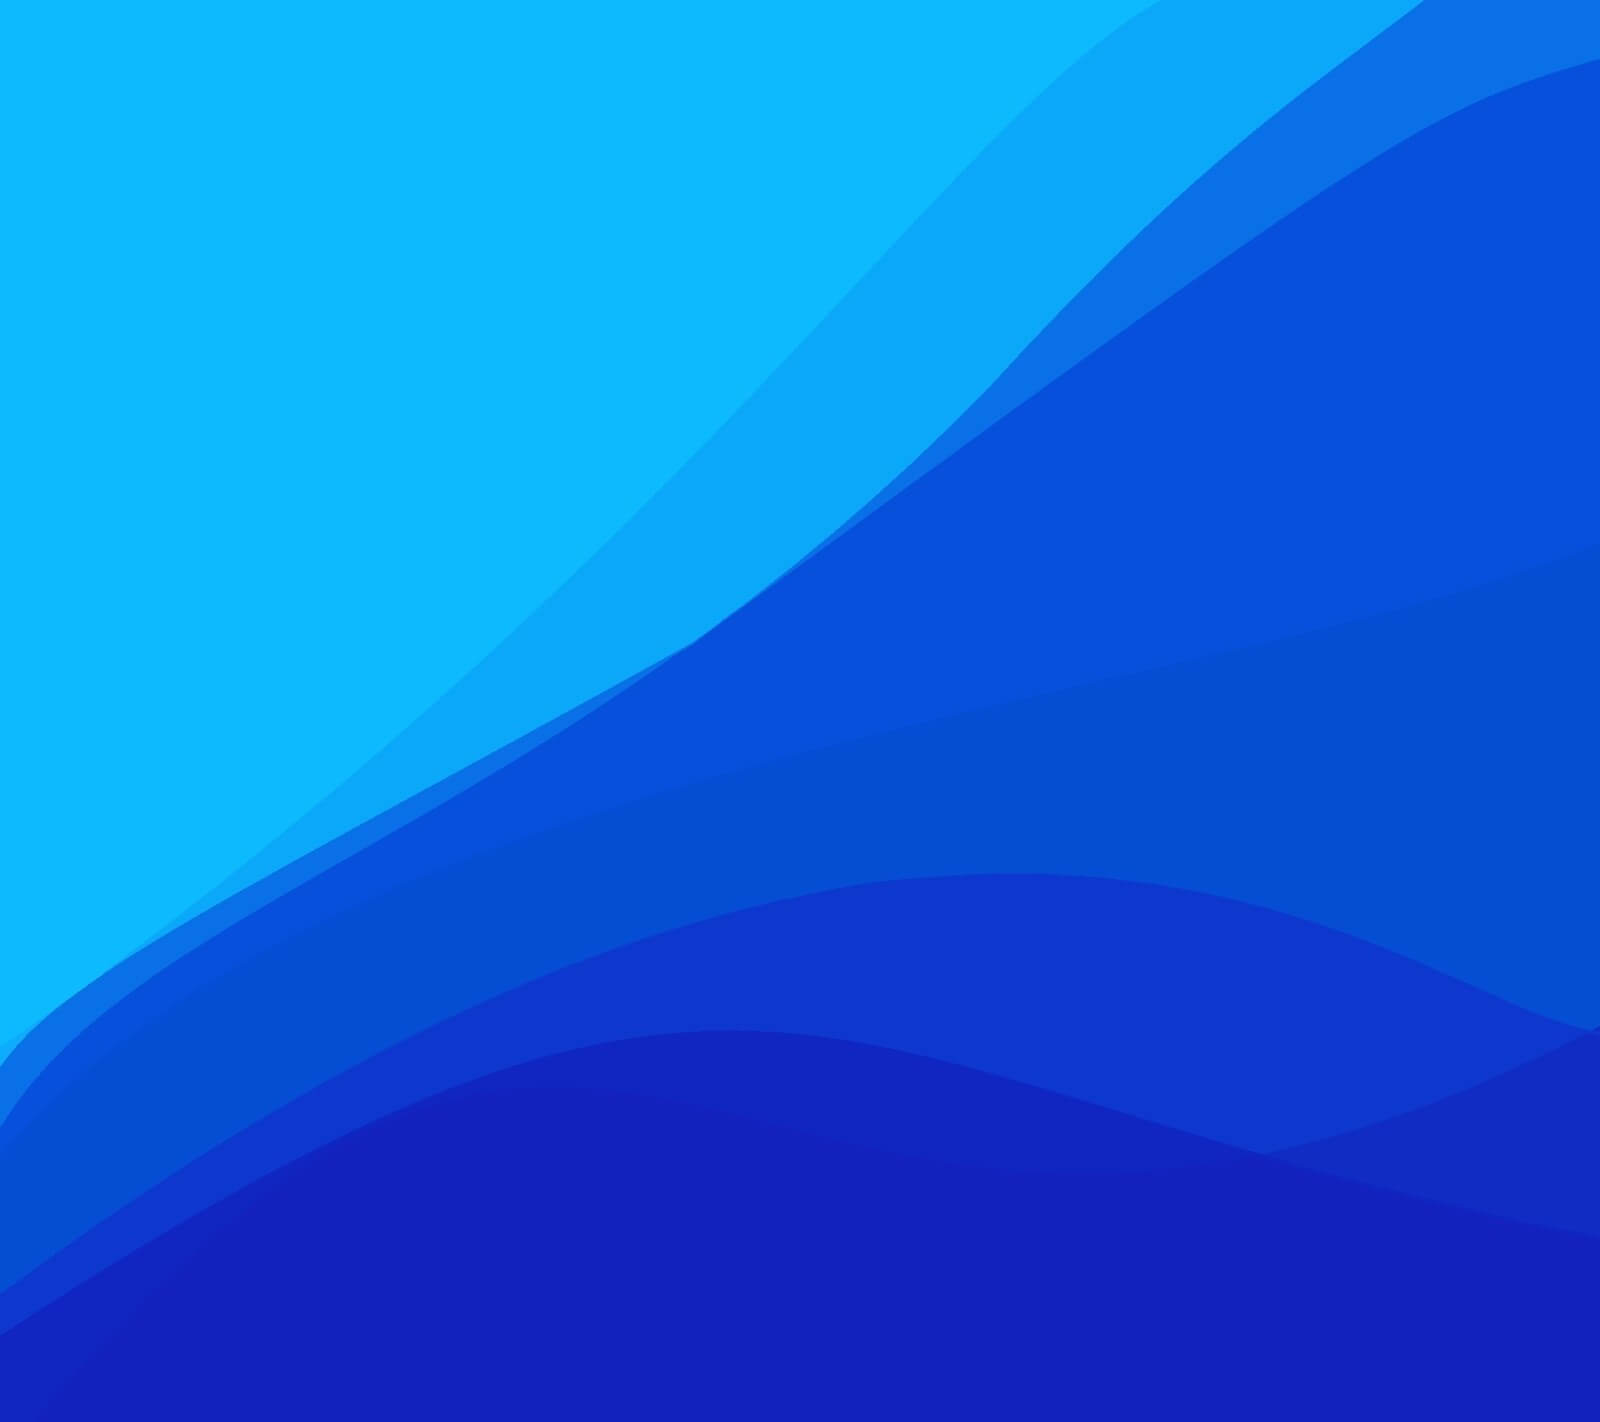 Sony Android Lollipop Wallpapers